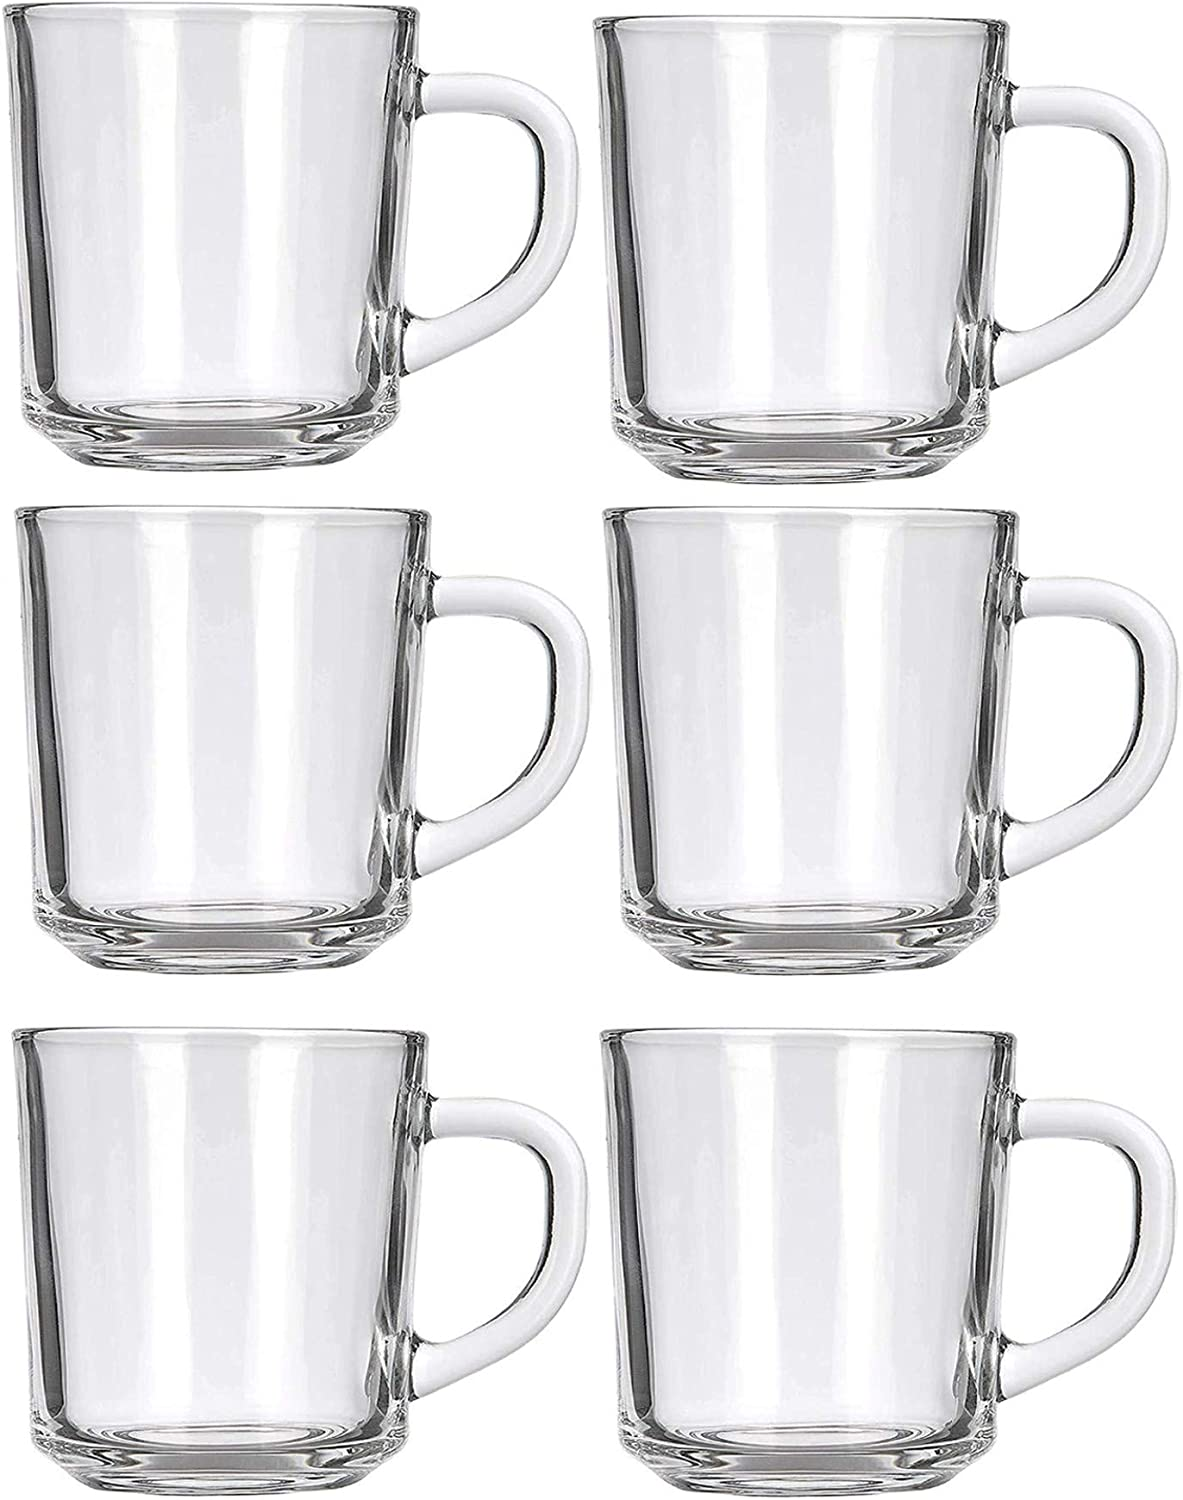 Café Glass Coffee Mugs - Clear, 8 oz Great For Tea, Coffee, Juice, Mulled Wine And More! (6)